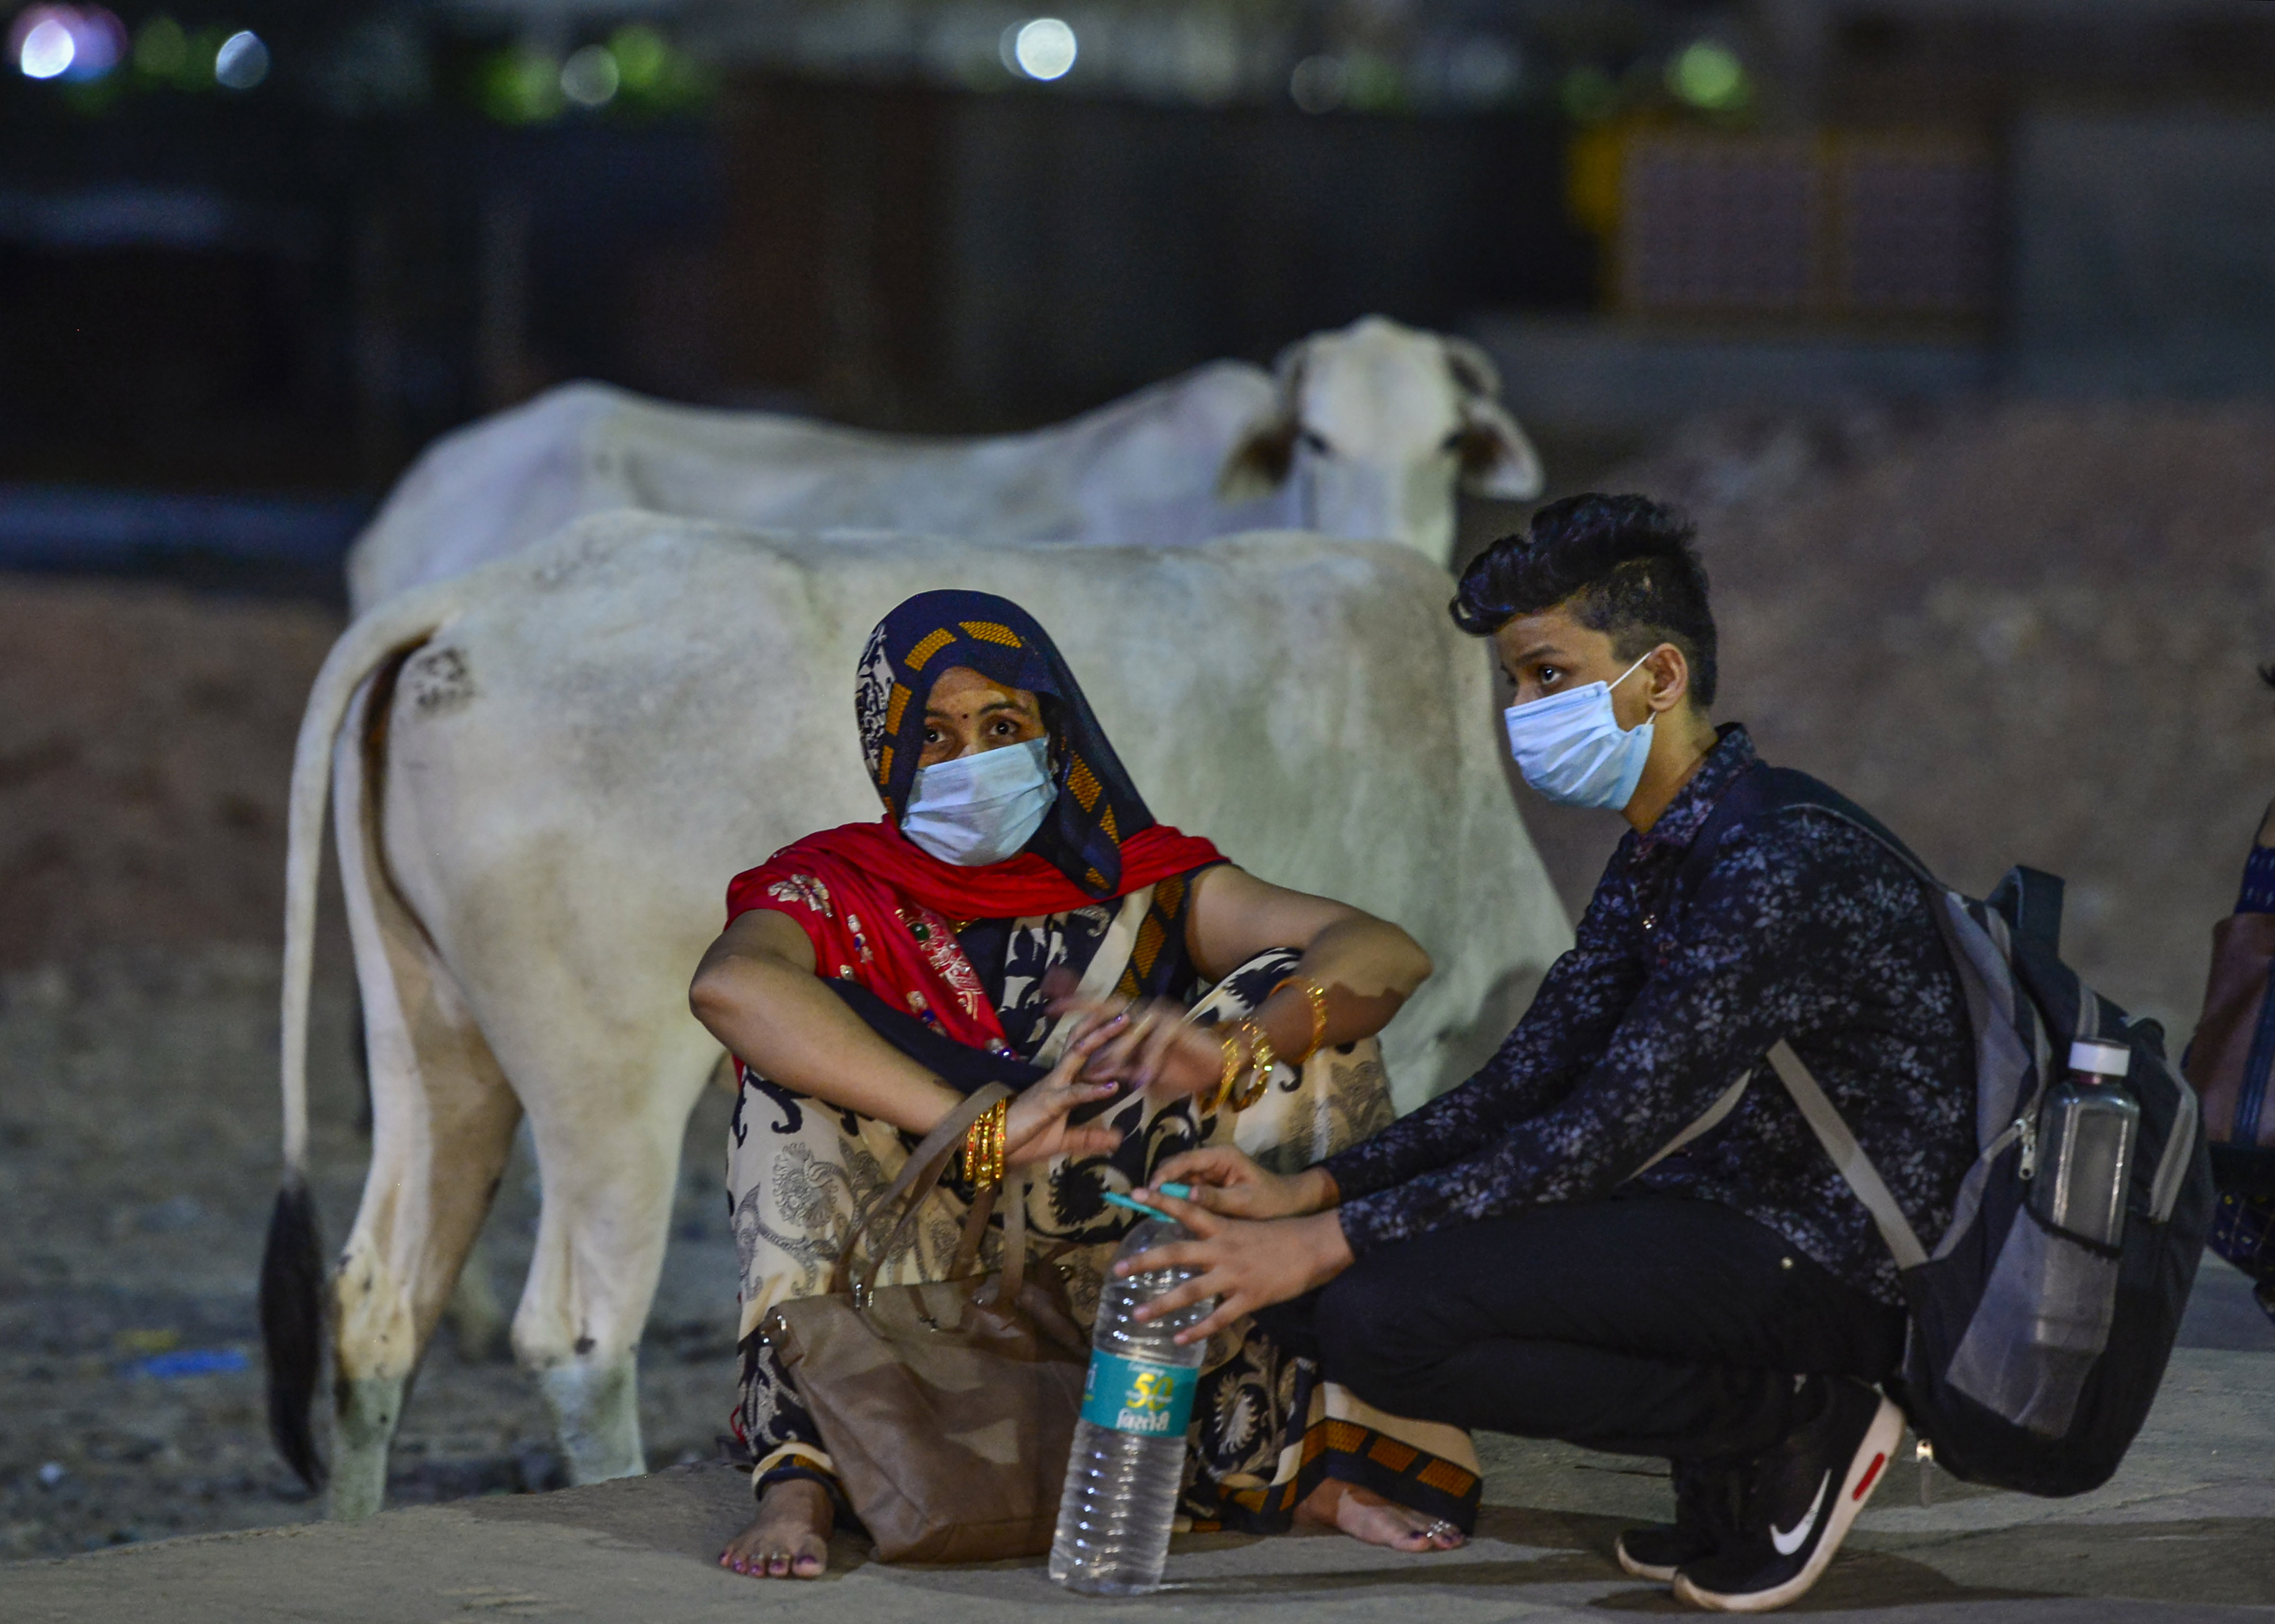 Migrants take rest near Ghazipur after being stopped by the police, during ongoing Covid-19 lockdown, in New Delhi, Monday, May 18, 2020